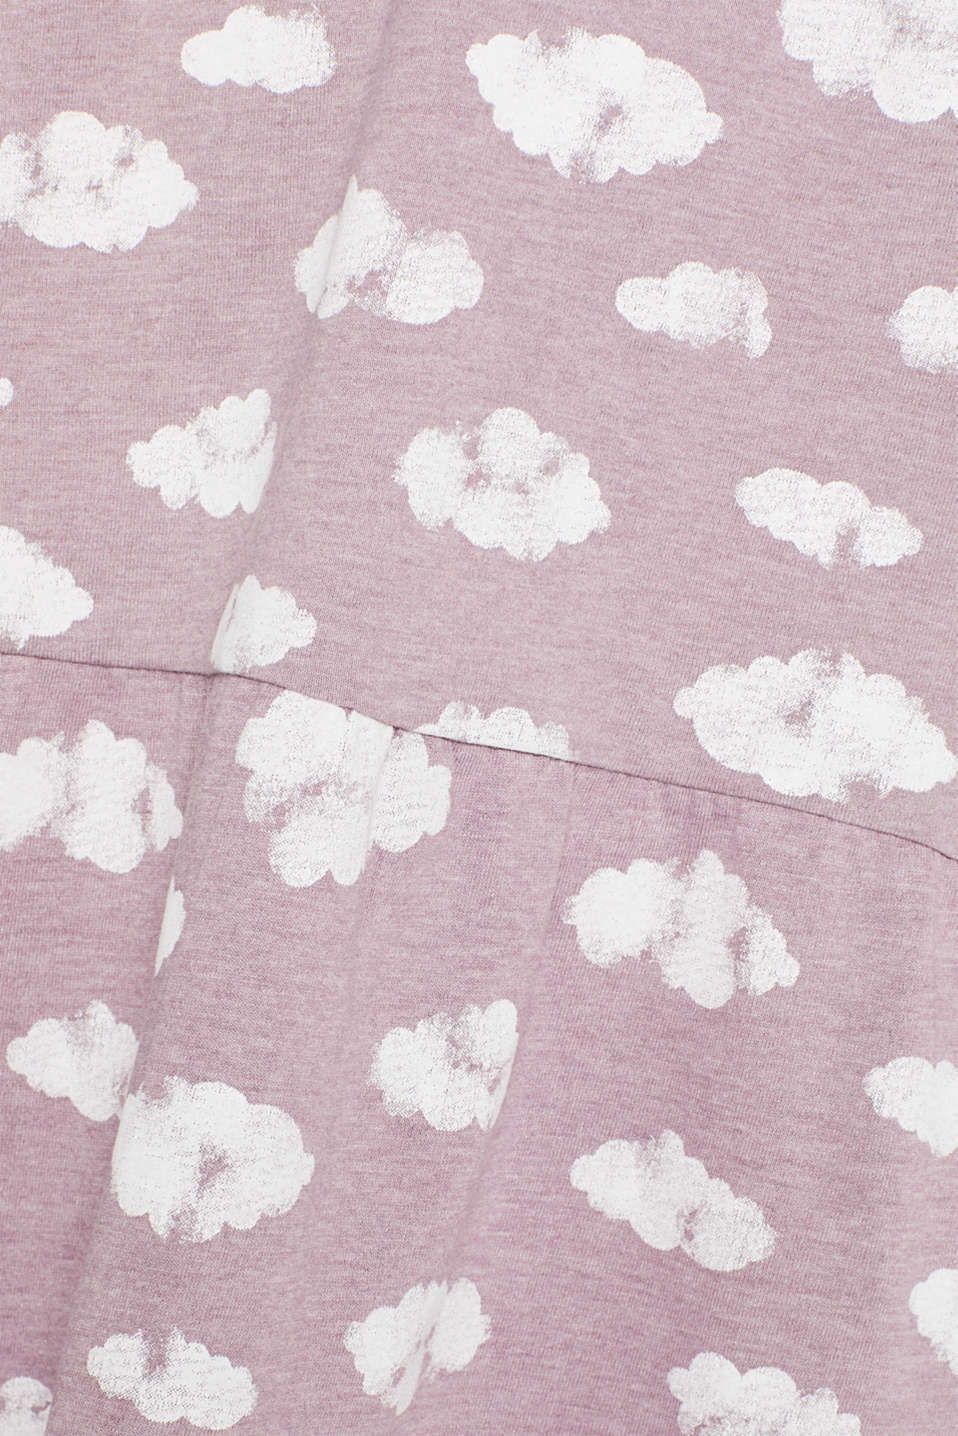 Jersey nightshirt with a print, MAUVE, detail image number 4